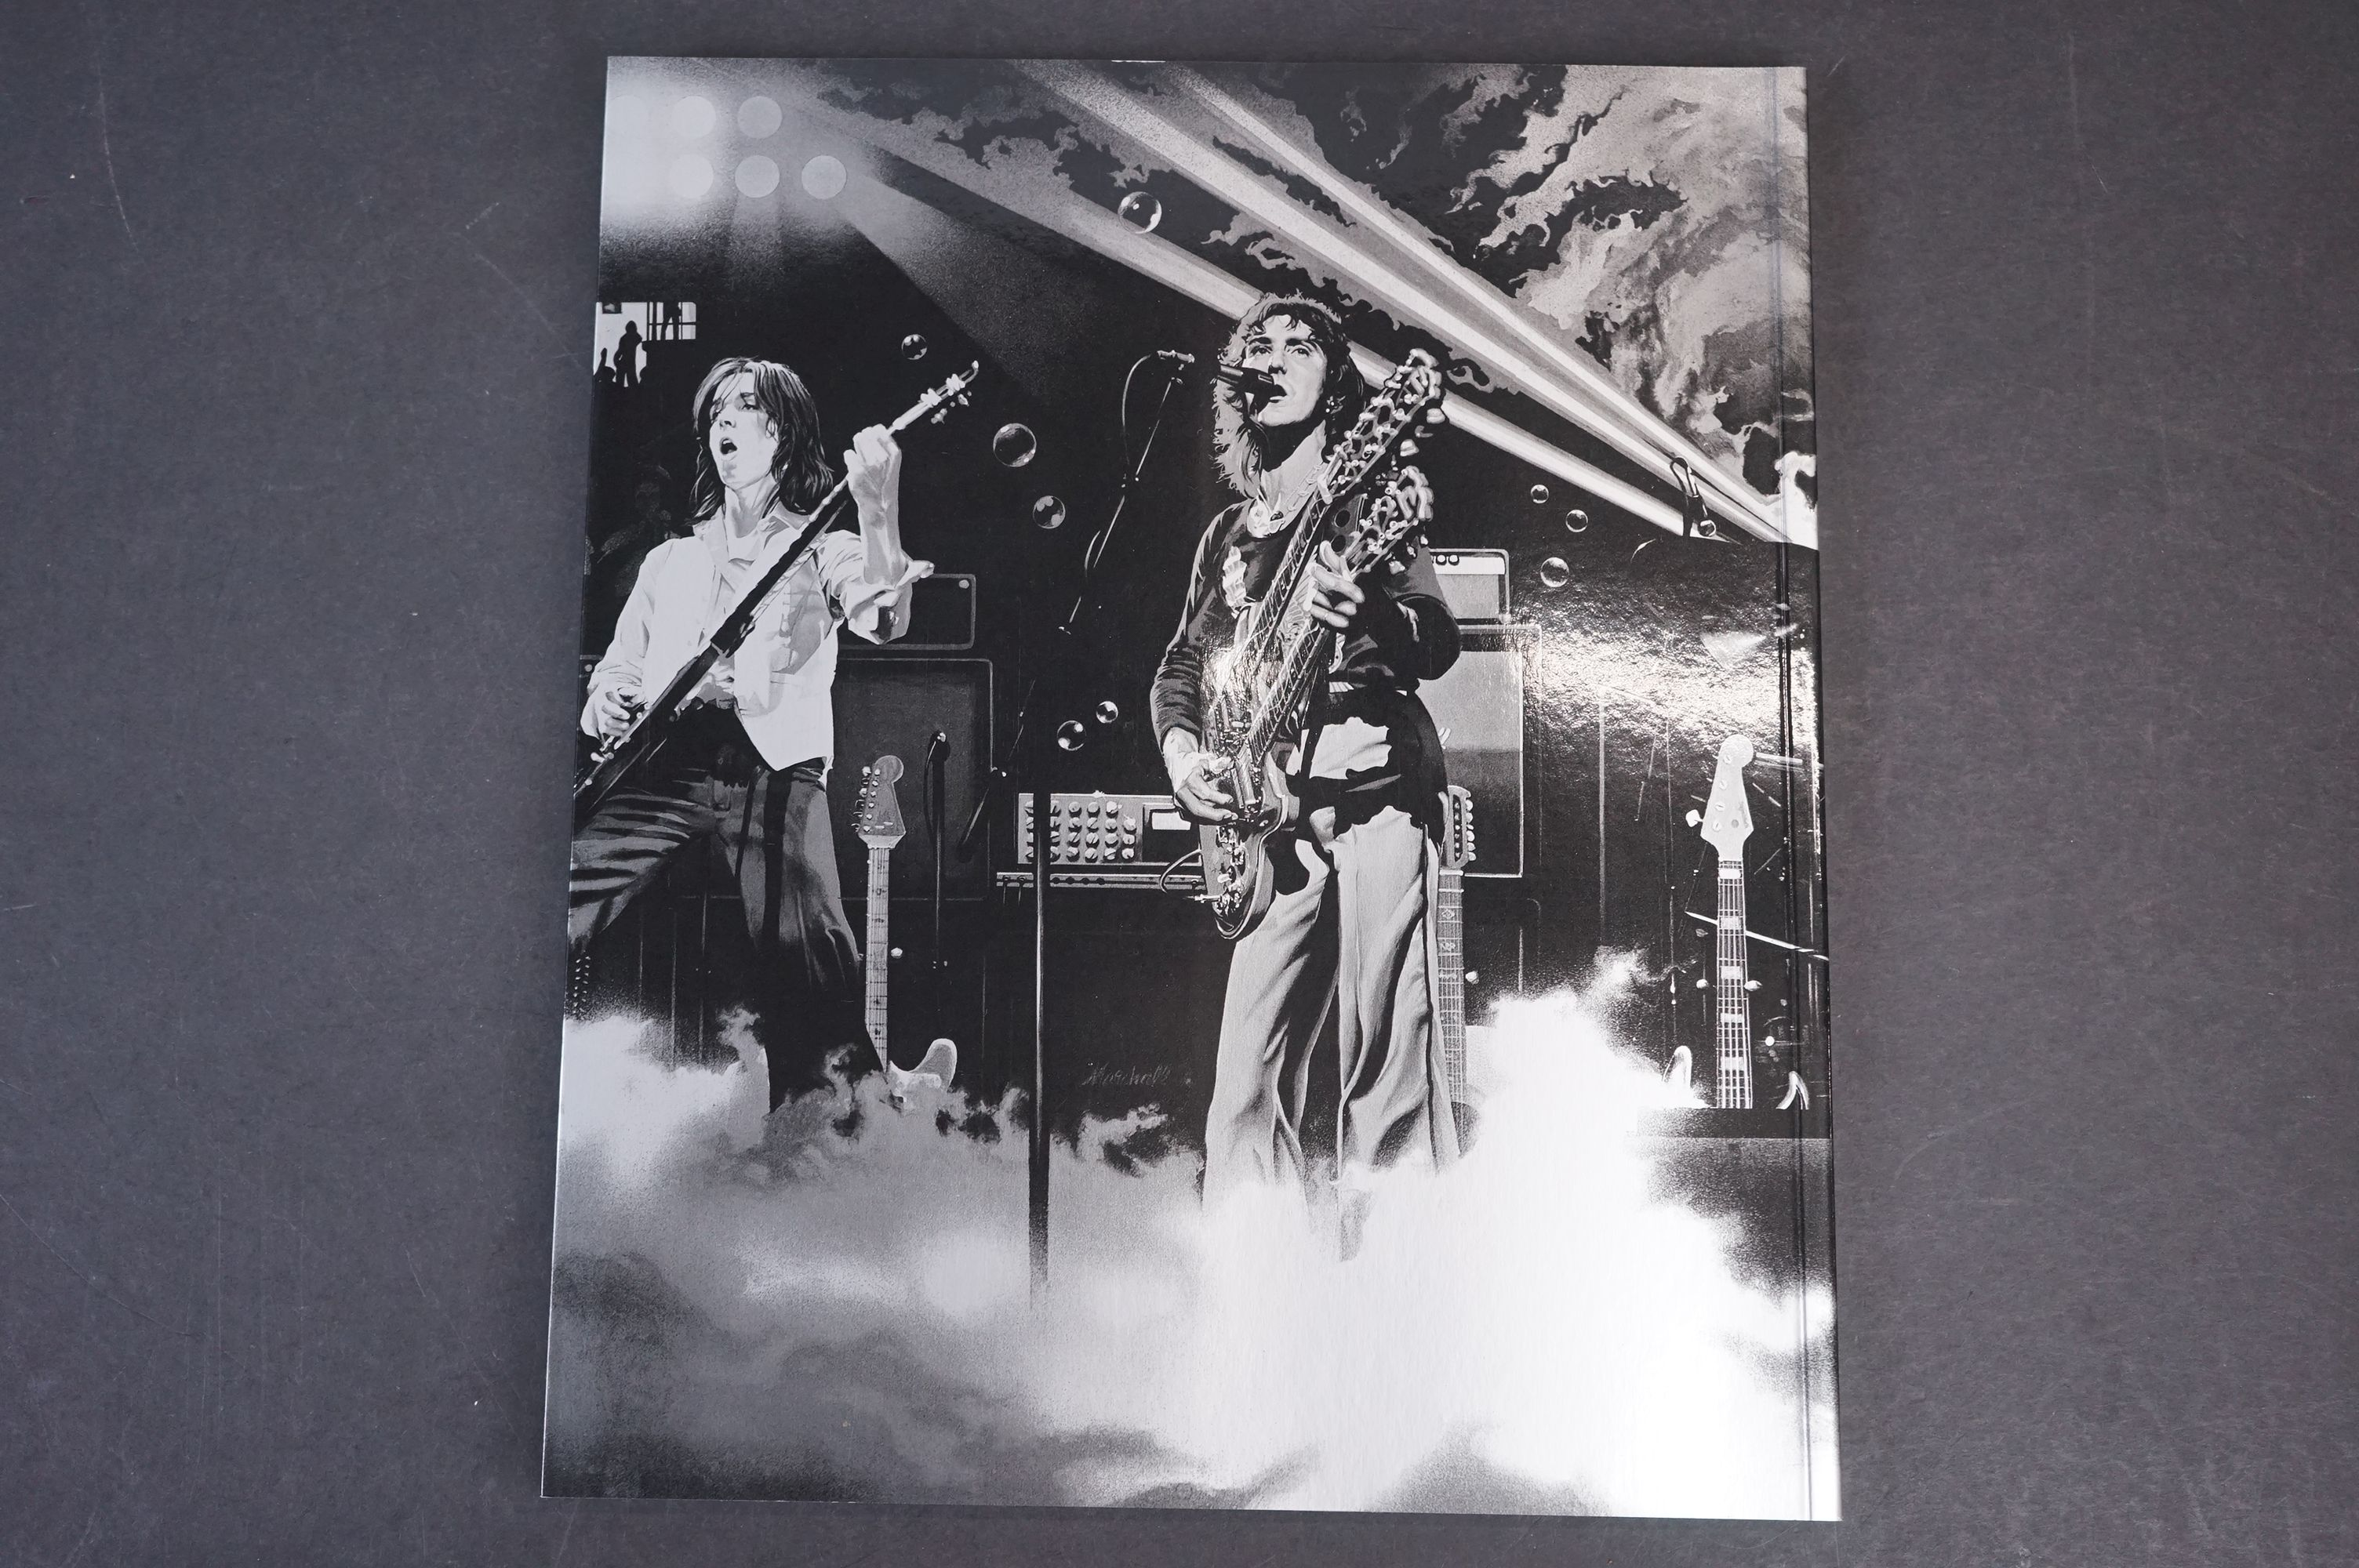 Box Set - Paul McCartney & Wings - Wings Over America numbered box set (03555) deluxe box set, ex - Image 8 of 18